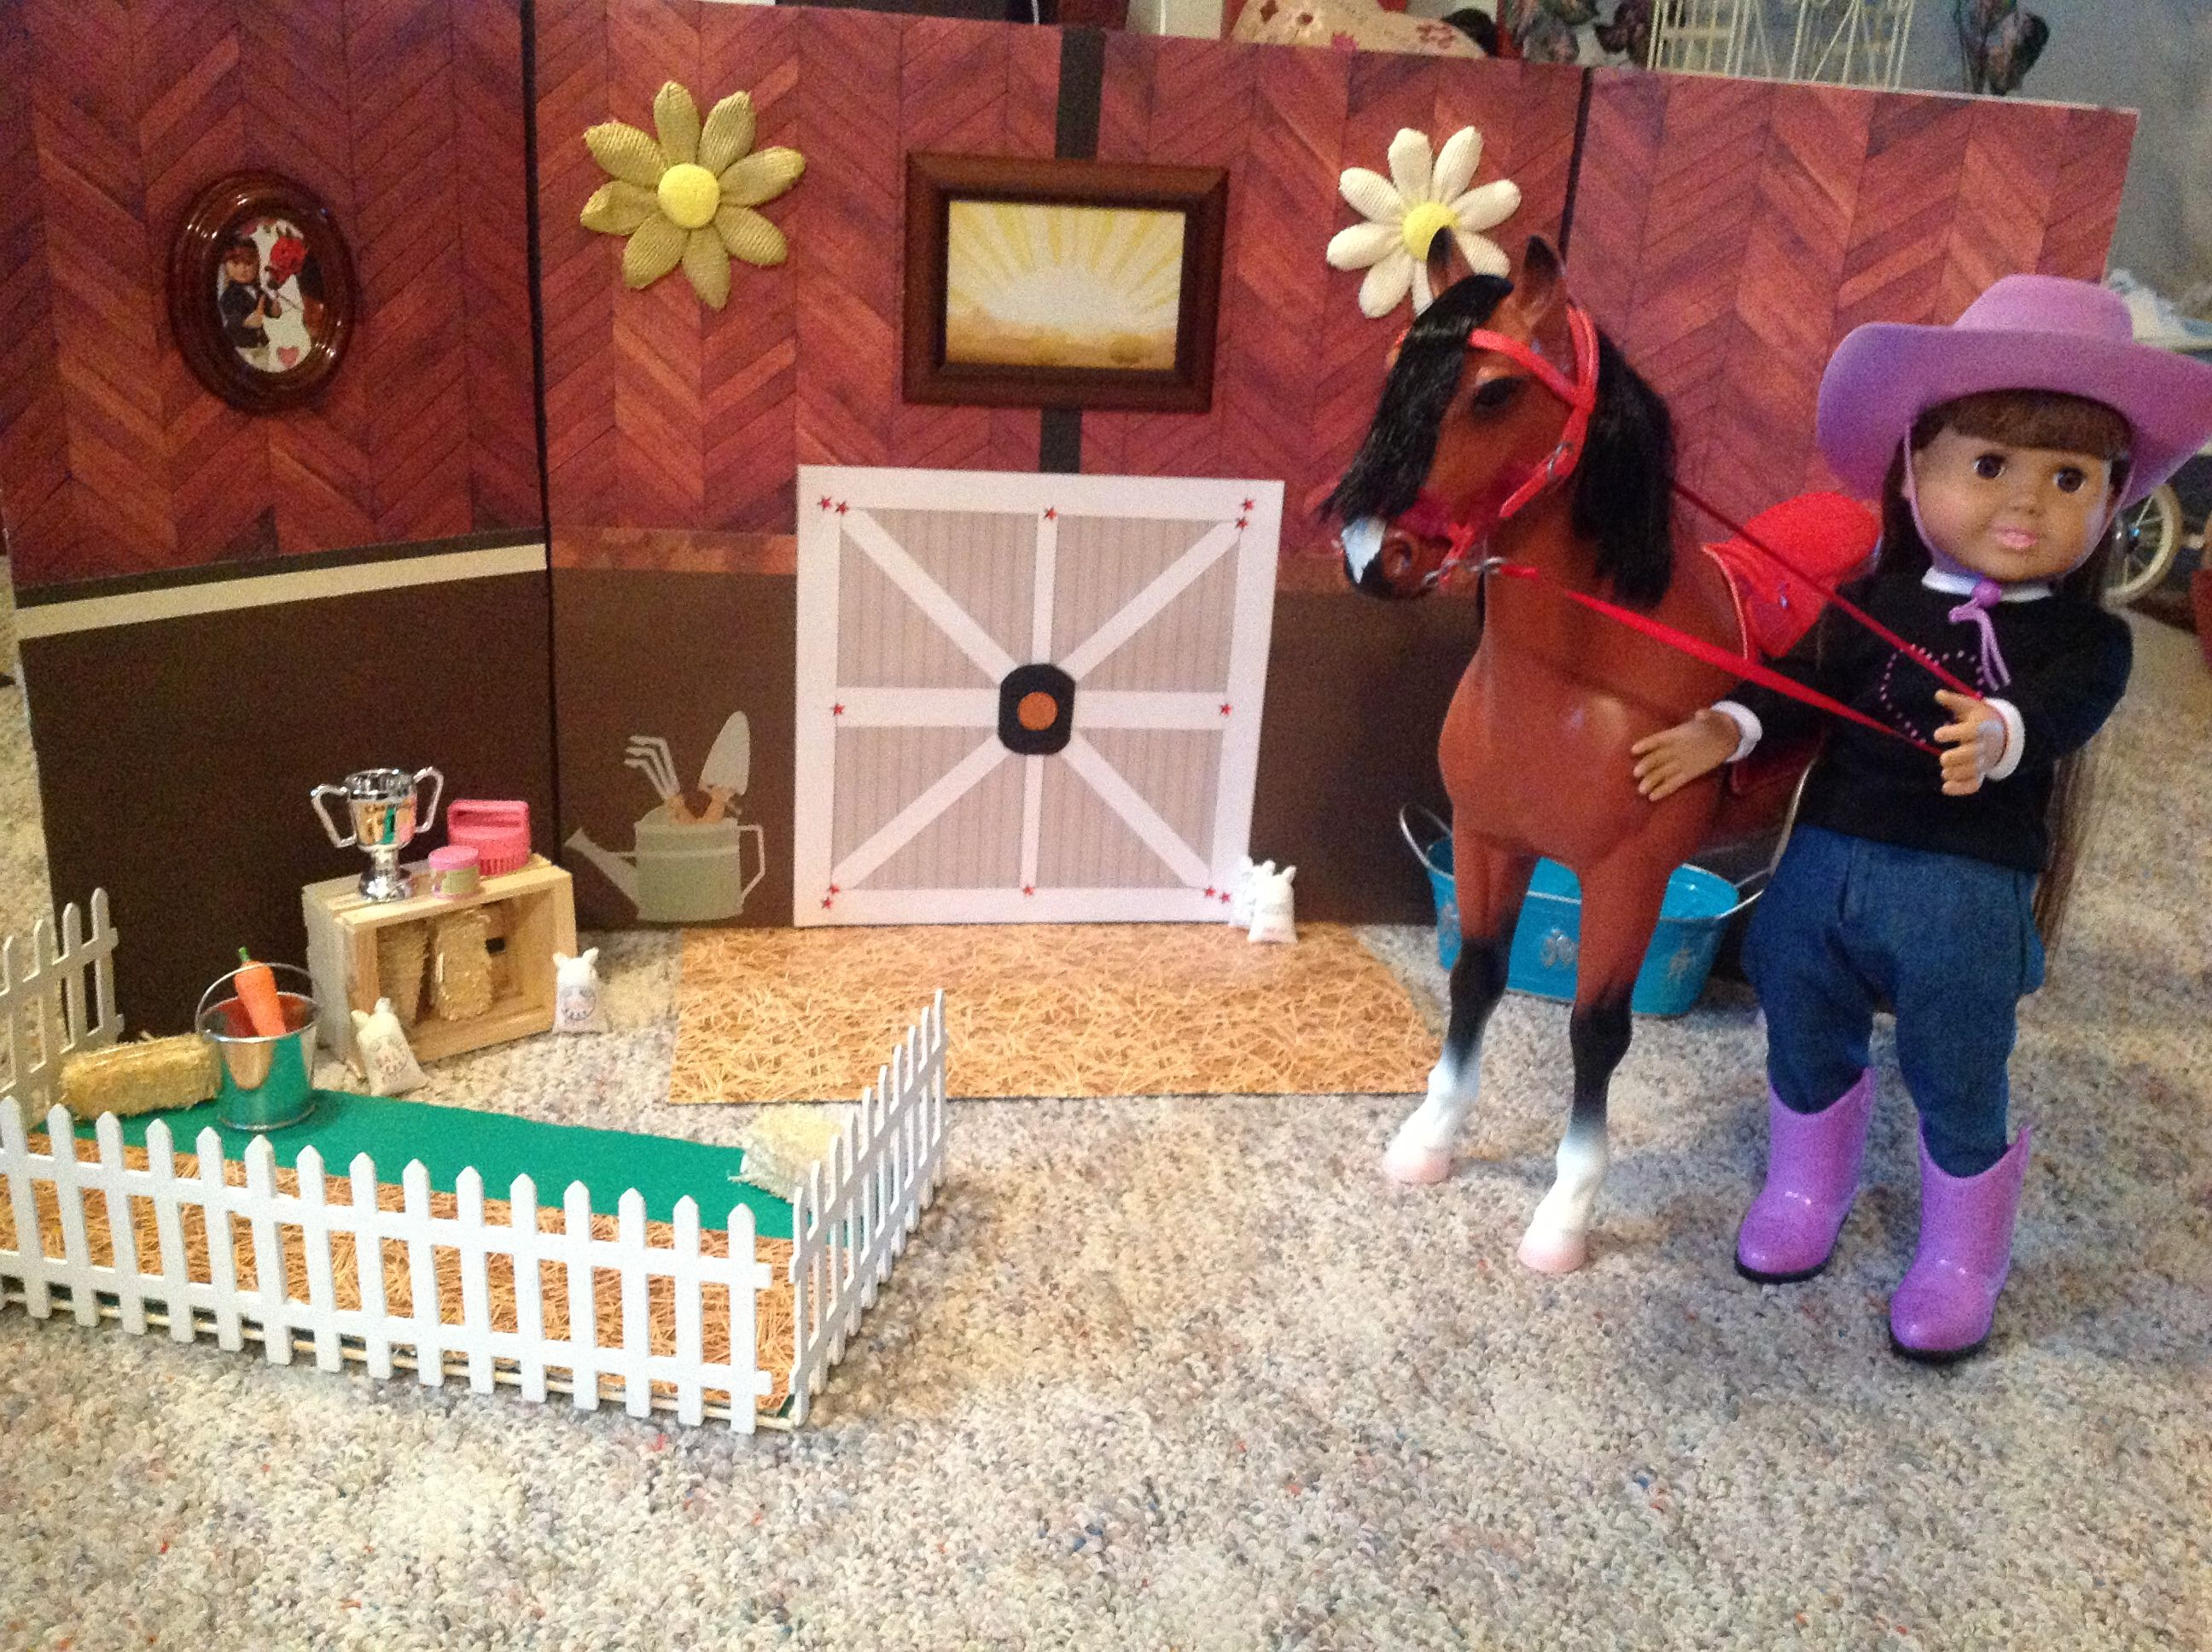 Scrapbook paper display - American Girl Doll Horse Made With 3 Fold Display Board Covered In Scrapbook Paper And Embellishments